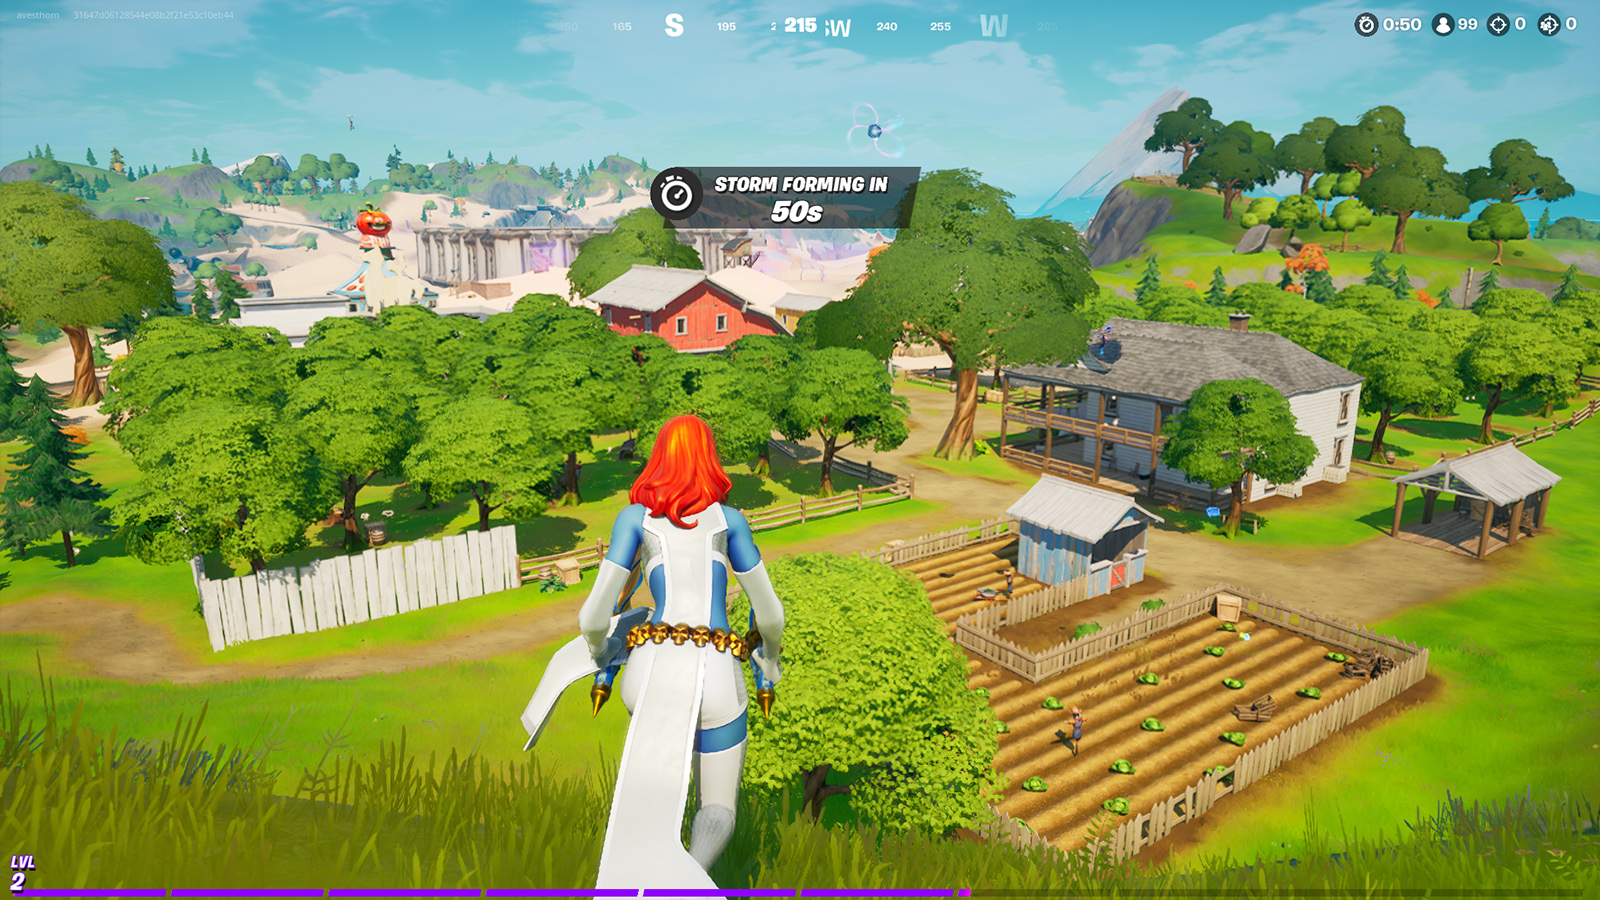 The Orchard, returning in Season 5 of Fortnite's Chapter 2